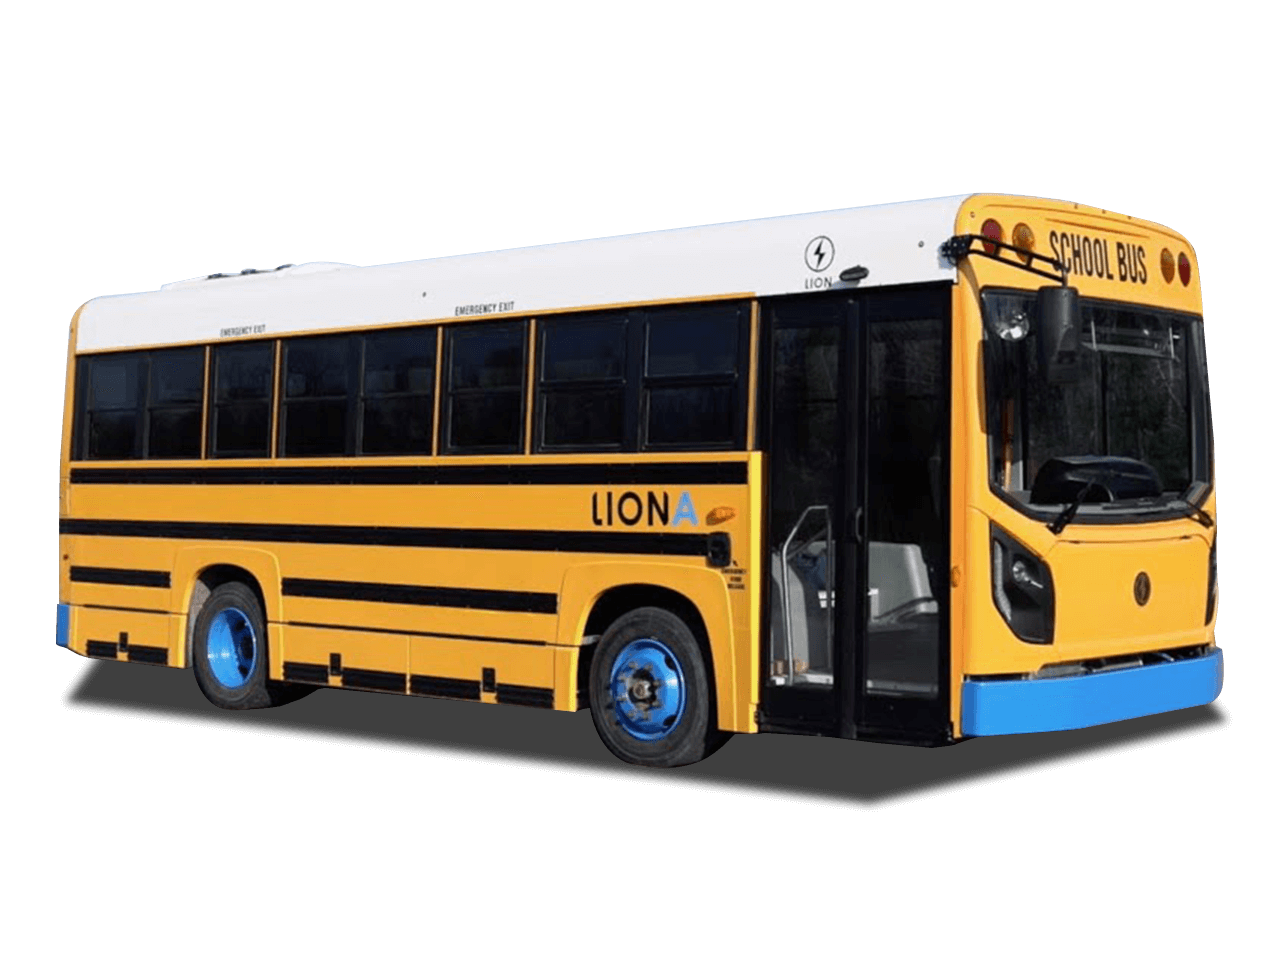 Lion A 168 kWh